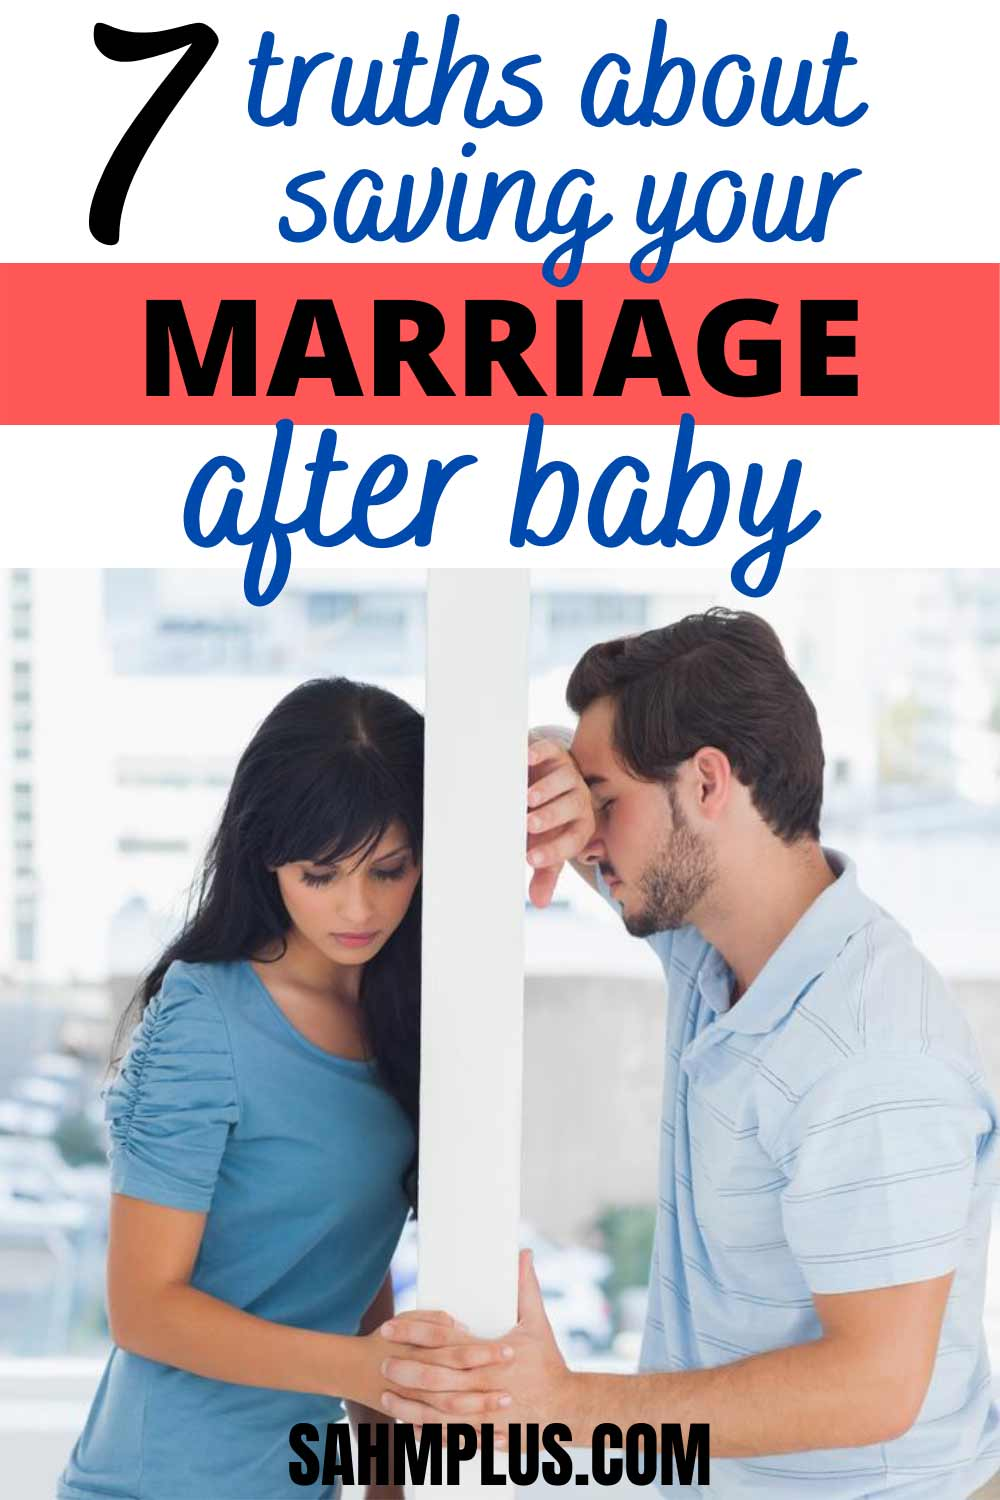 7 ways to sabotage a healthy marriage after baby! These truths will help strengthen and improve your marriage, even if you think having a baby ruined your relationship